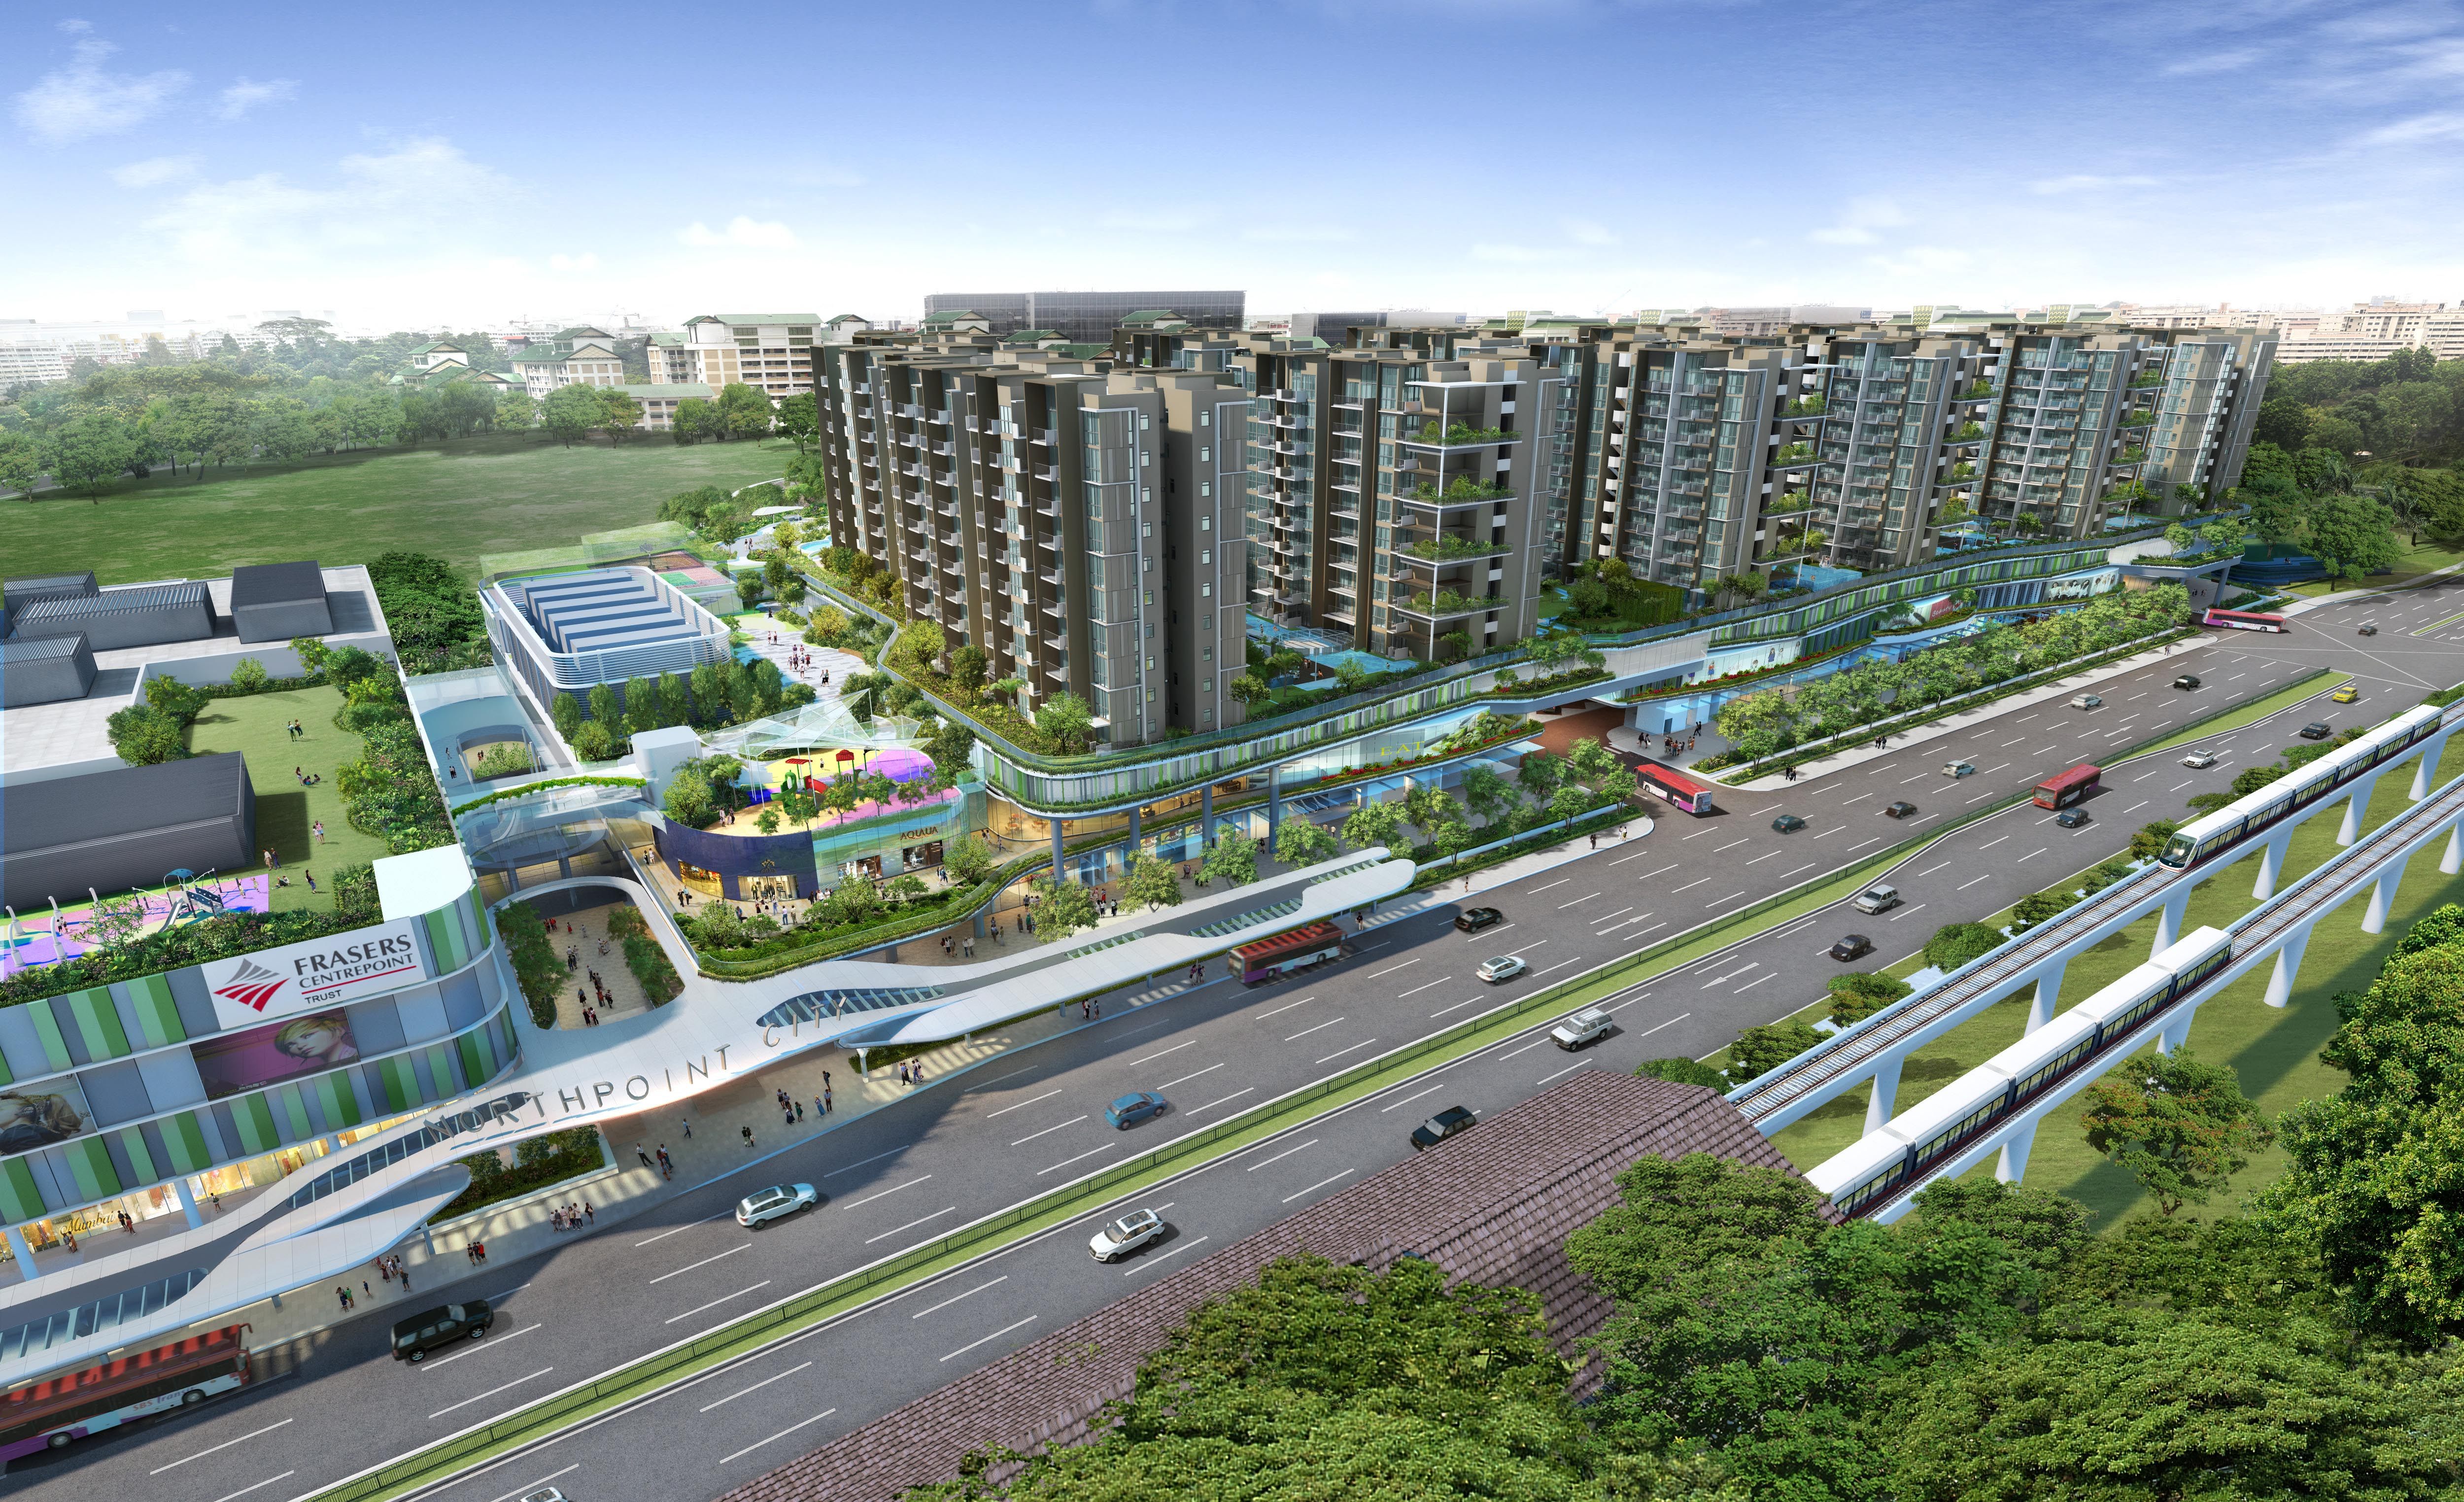 Singapore Property Launches - NorthPark Residences